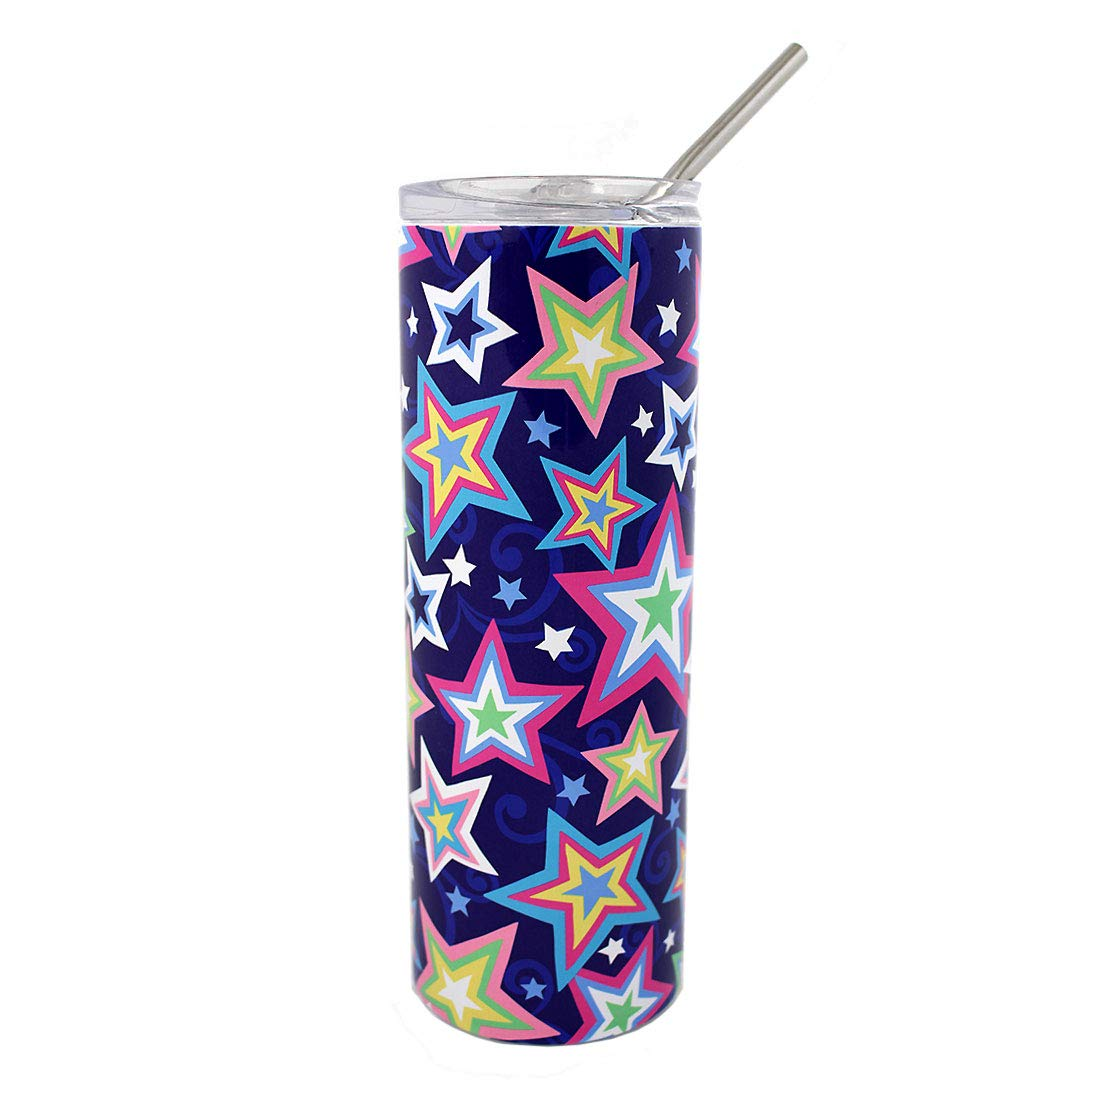 20 oz. Colorful Stars on Stainless Steel NEW New Free Shipping Tumbler M Travel Coffee